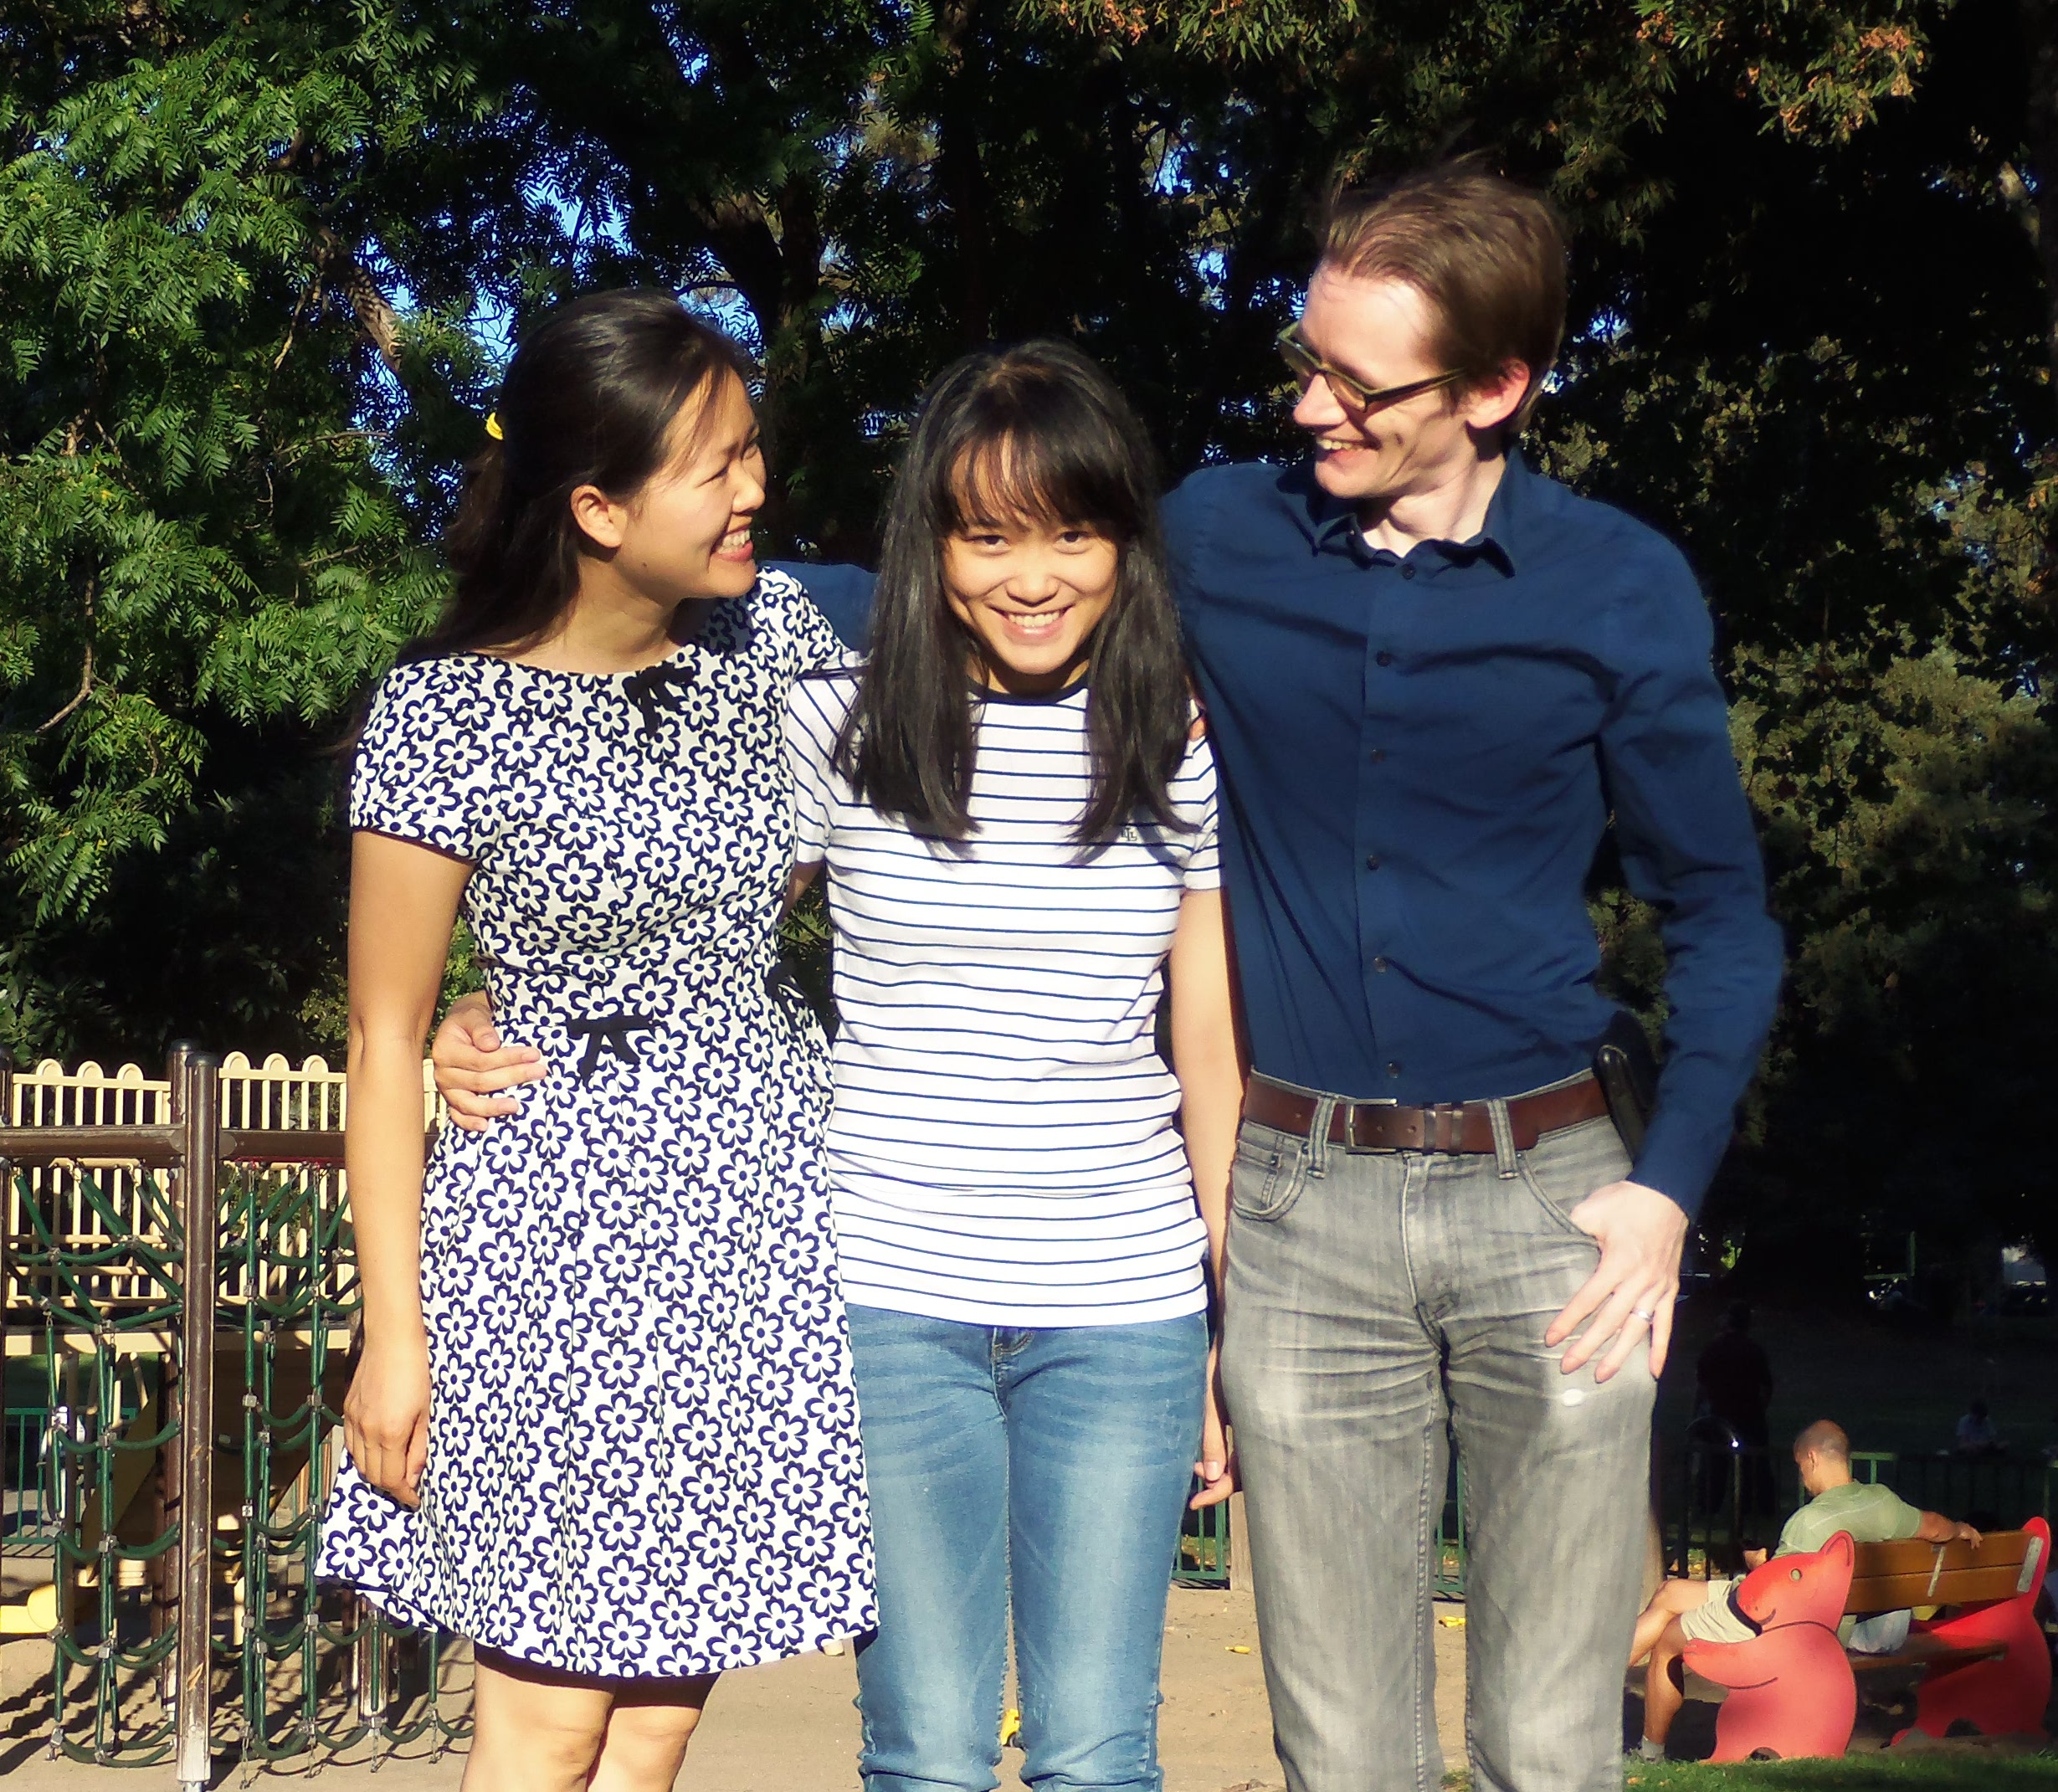 [Quynh, Thao, and Neil]